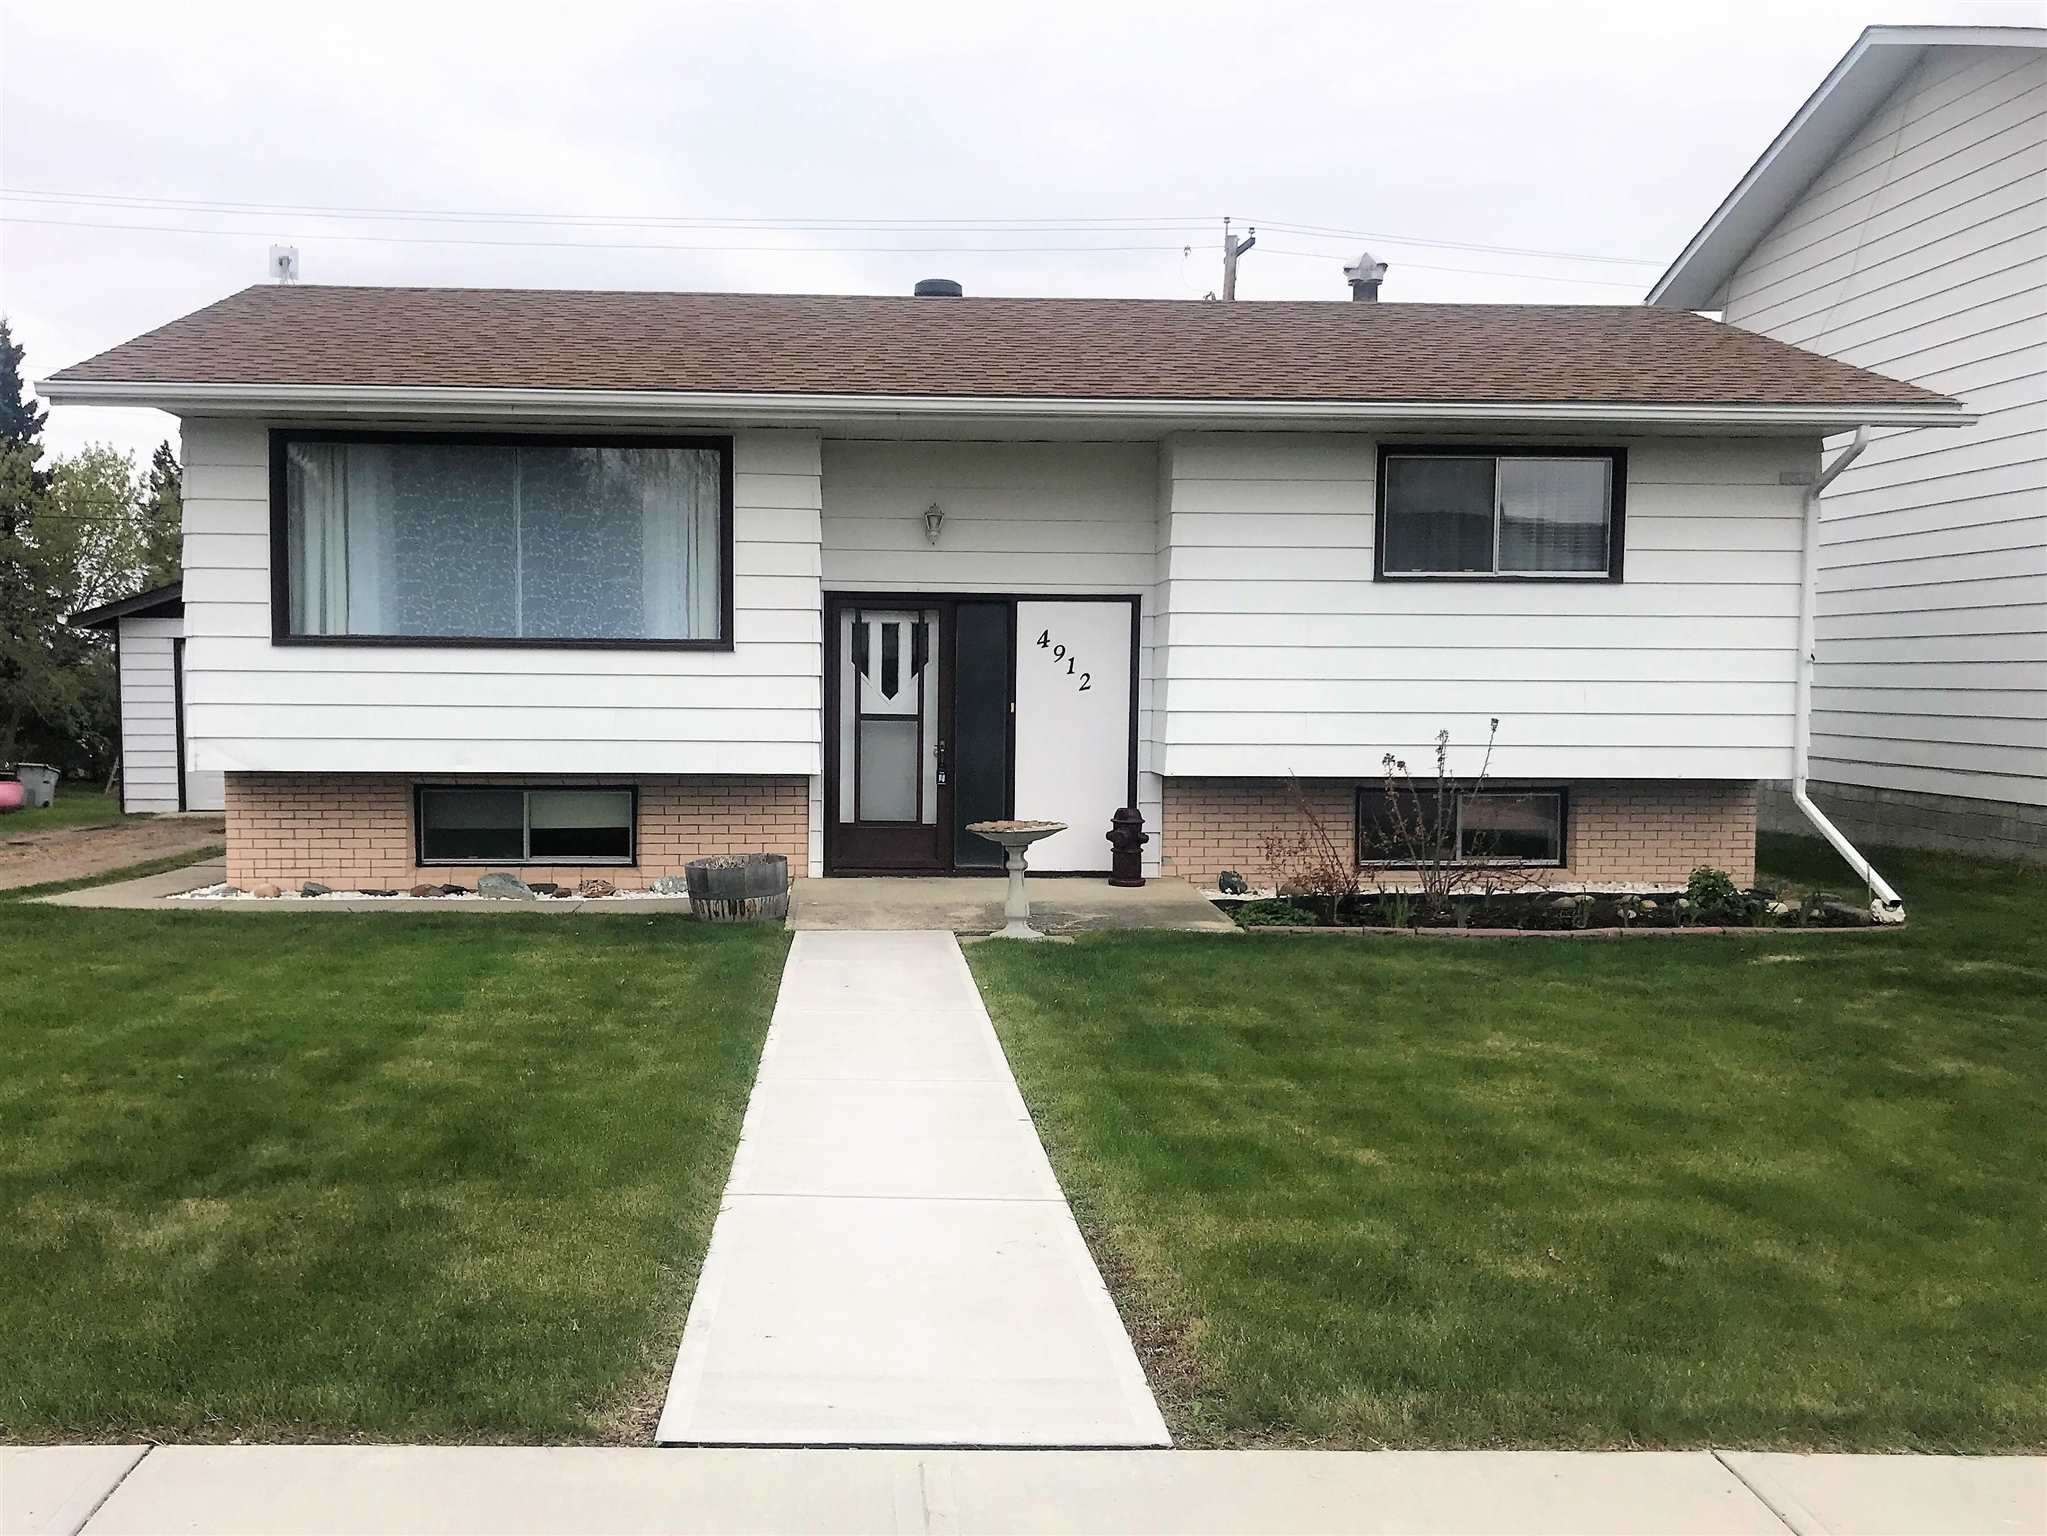 Family Home in Evansburg! Four bedrooms (2 up 2 down), two bathrooms, open kitchen/dining with plenty of cupboards / counter tops and a large living room with pellet stove for those cooler days. The basement adds a family room, bedrooms, bathroom, laundry and storage space. New roof and vents in 2020. Large fenced back yard backs onto alley and features a variety of fruit trees and shrubs, large 2 level deck, fire pit, chain link fence with privacy lattice and a 8x12 well built greenhouse. The front yard is maintenance free with a new wide sidewalk. Garage has a new insulated 8x10 door with remote, concrete floor, power and is insulated/drywalled. The long gravel driveway has lots of room for parking vehicles and/or RV.